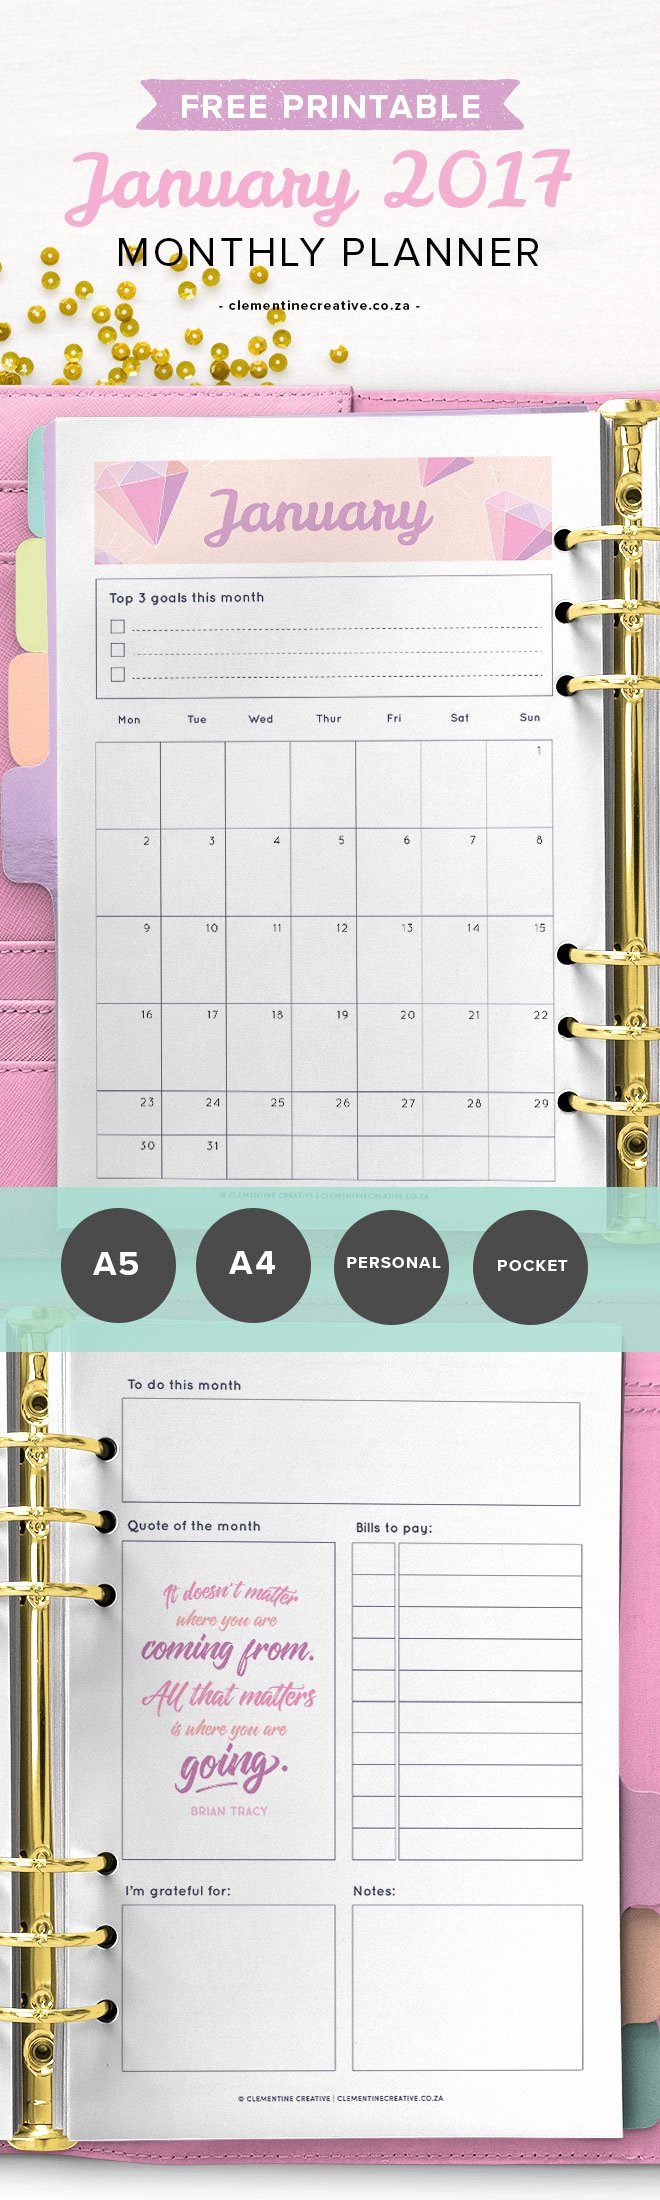 Printable Pocket Monthly Calendar Best Of January 2017 Printable Monthly Planner Clementine Creative